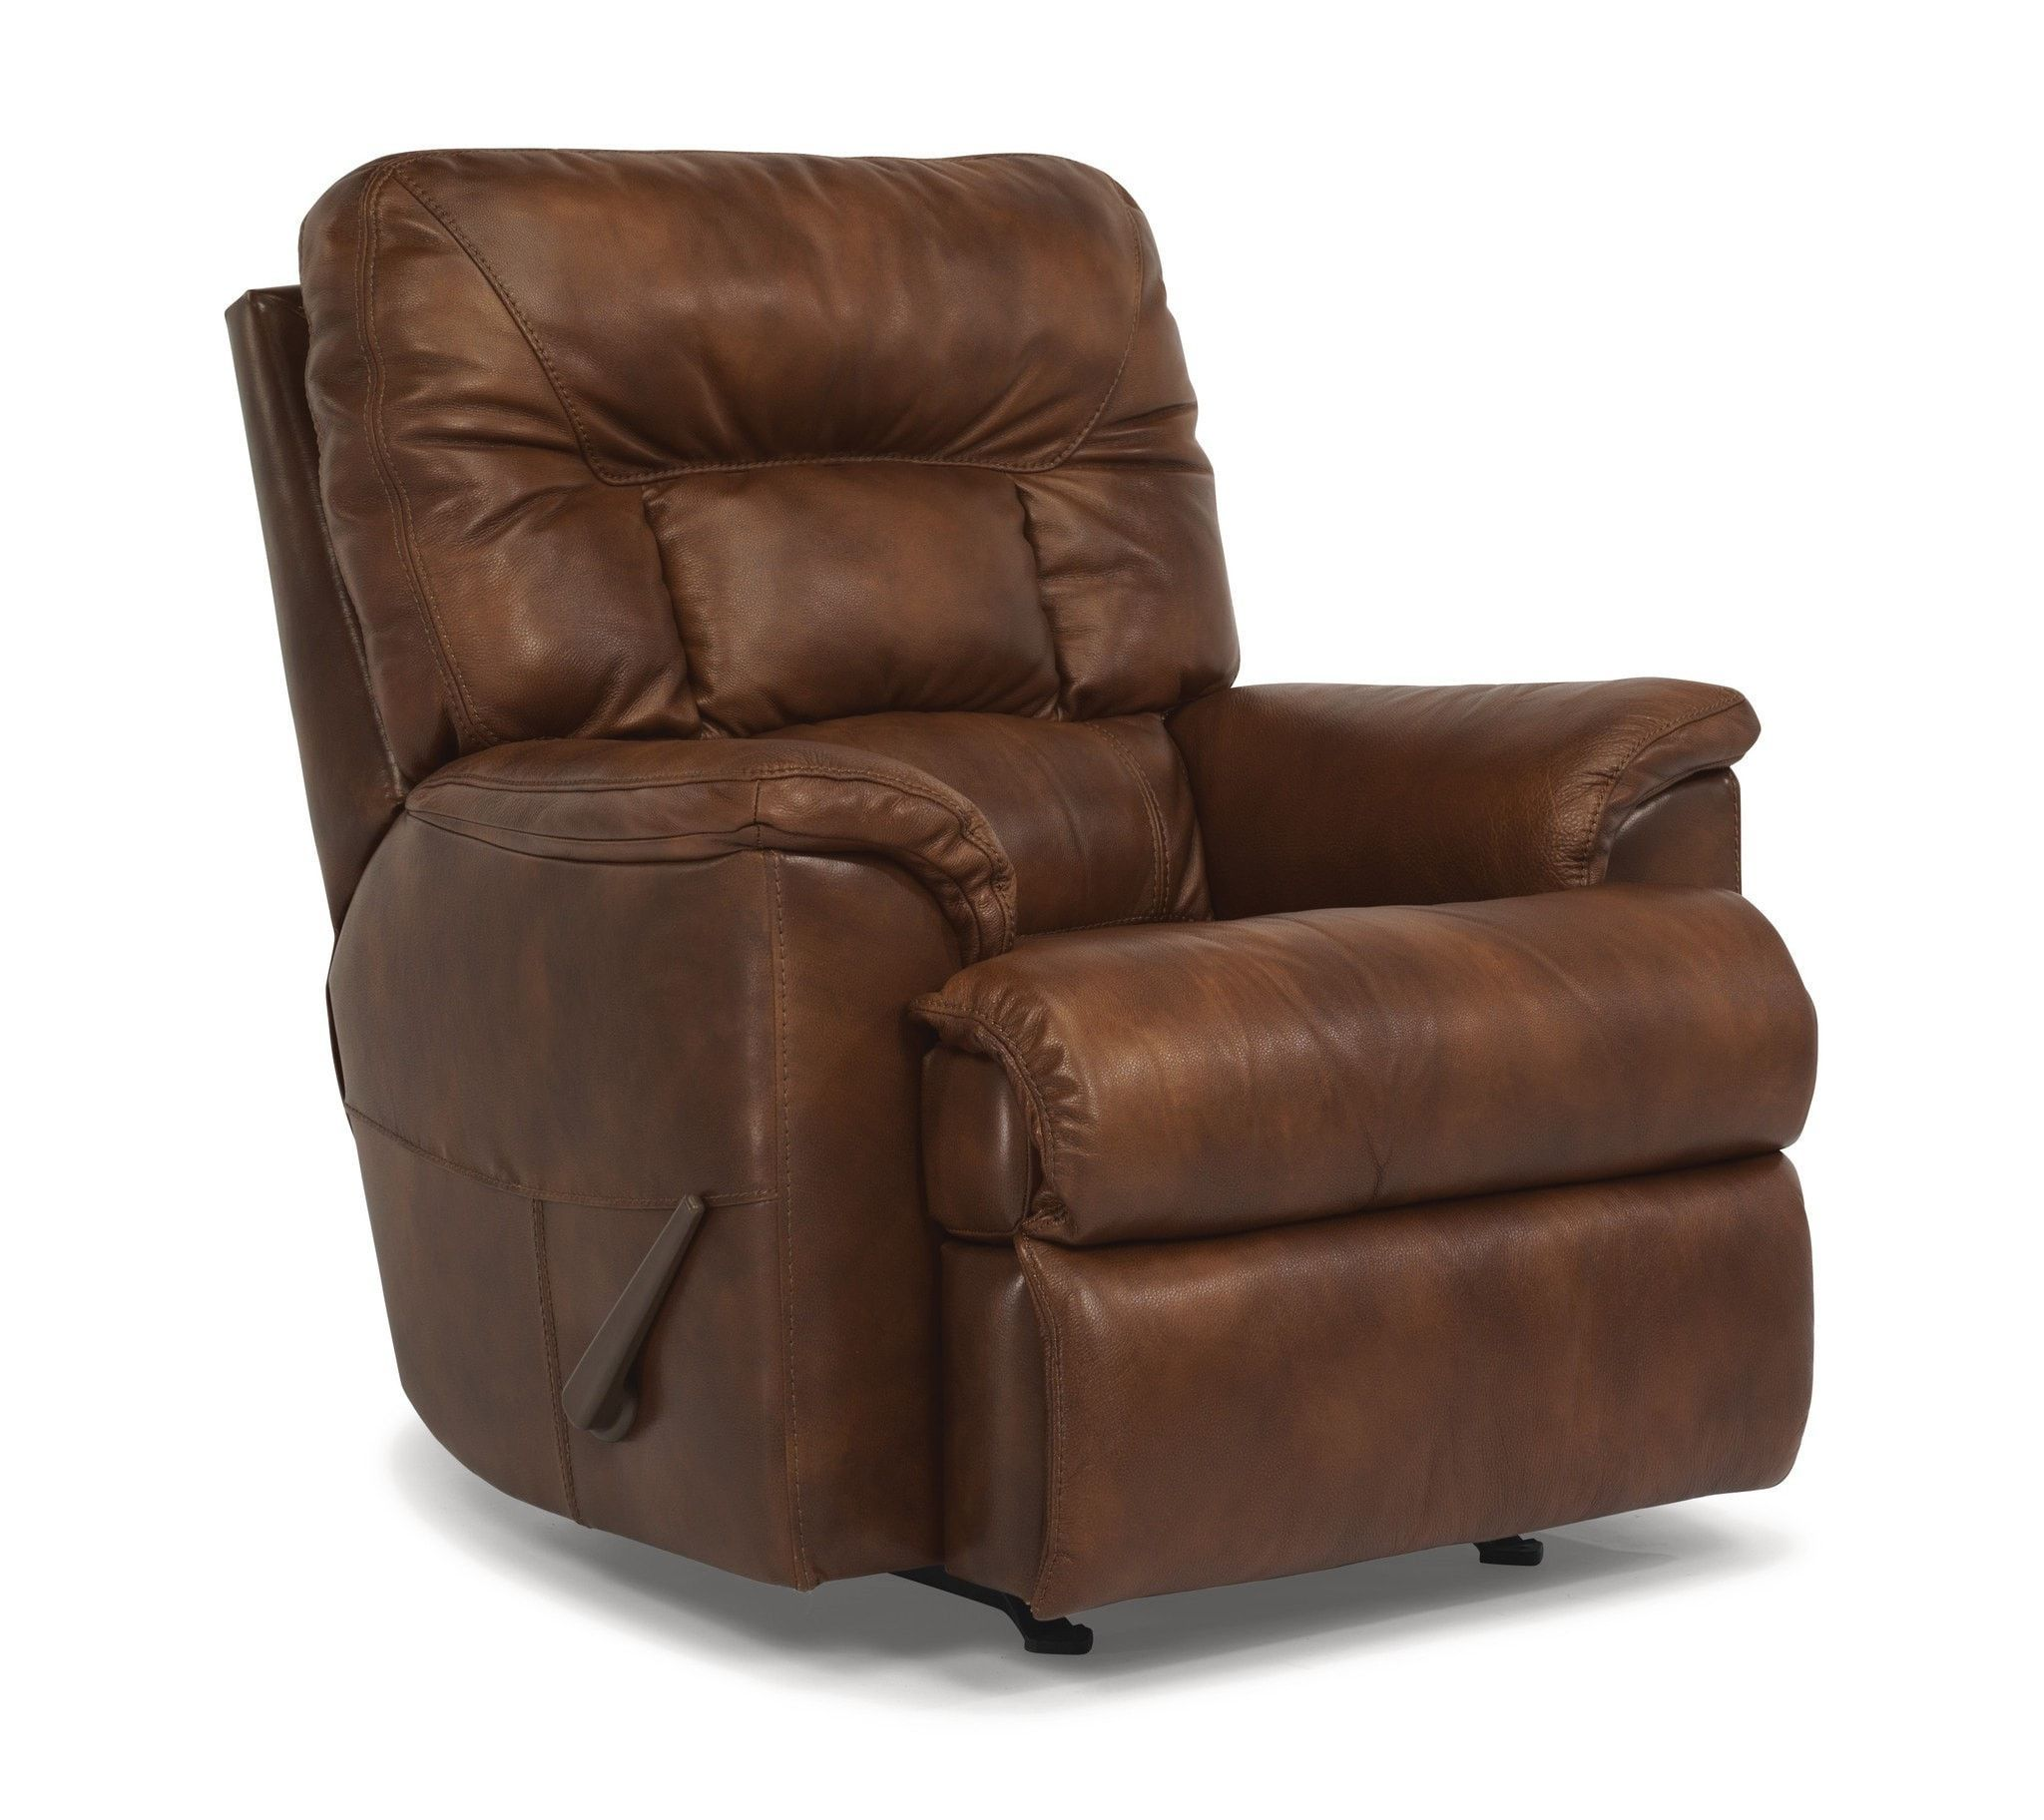 Great escape recliner products pinterest recliner and